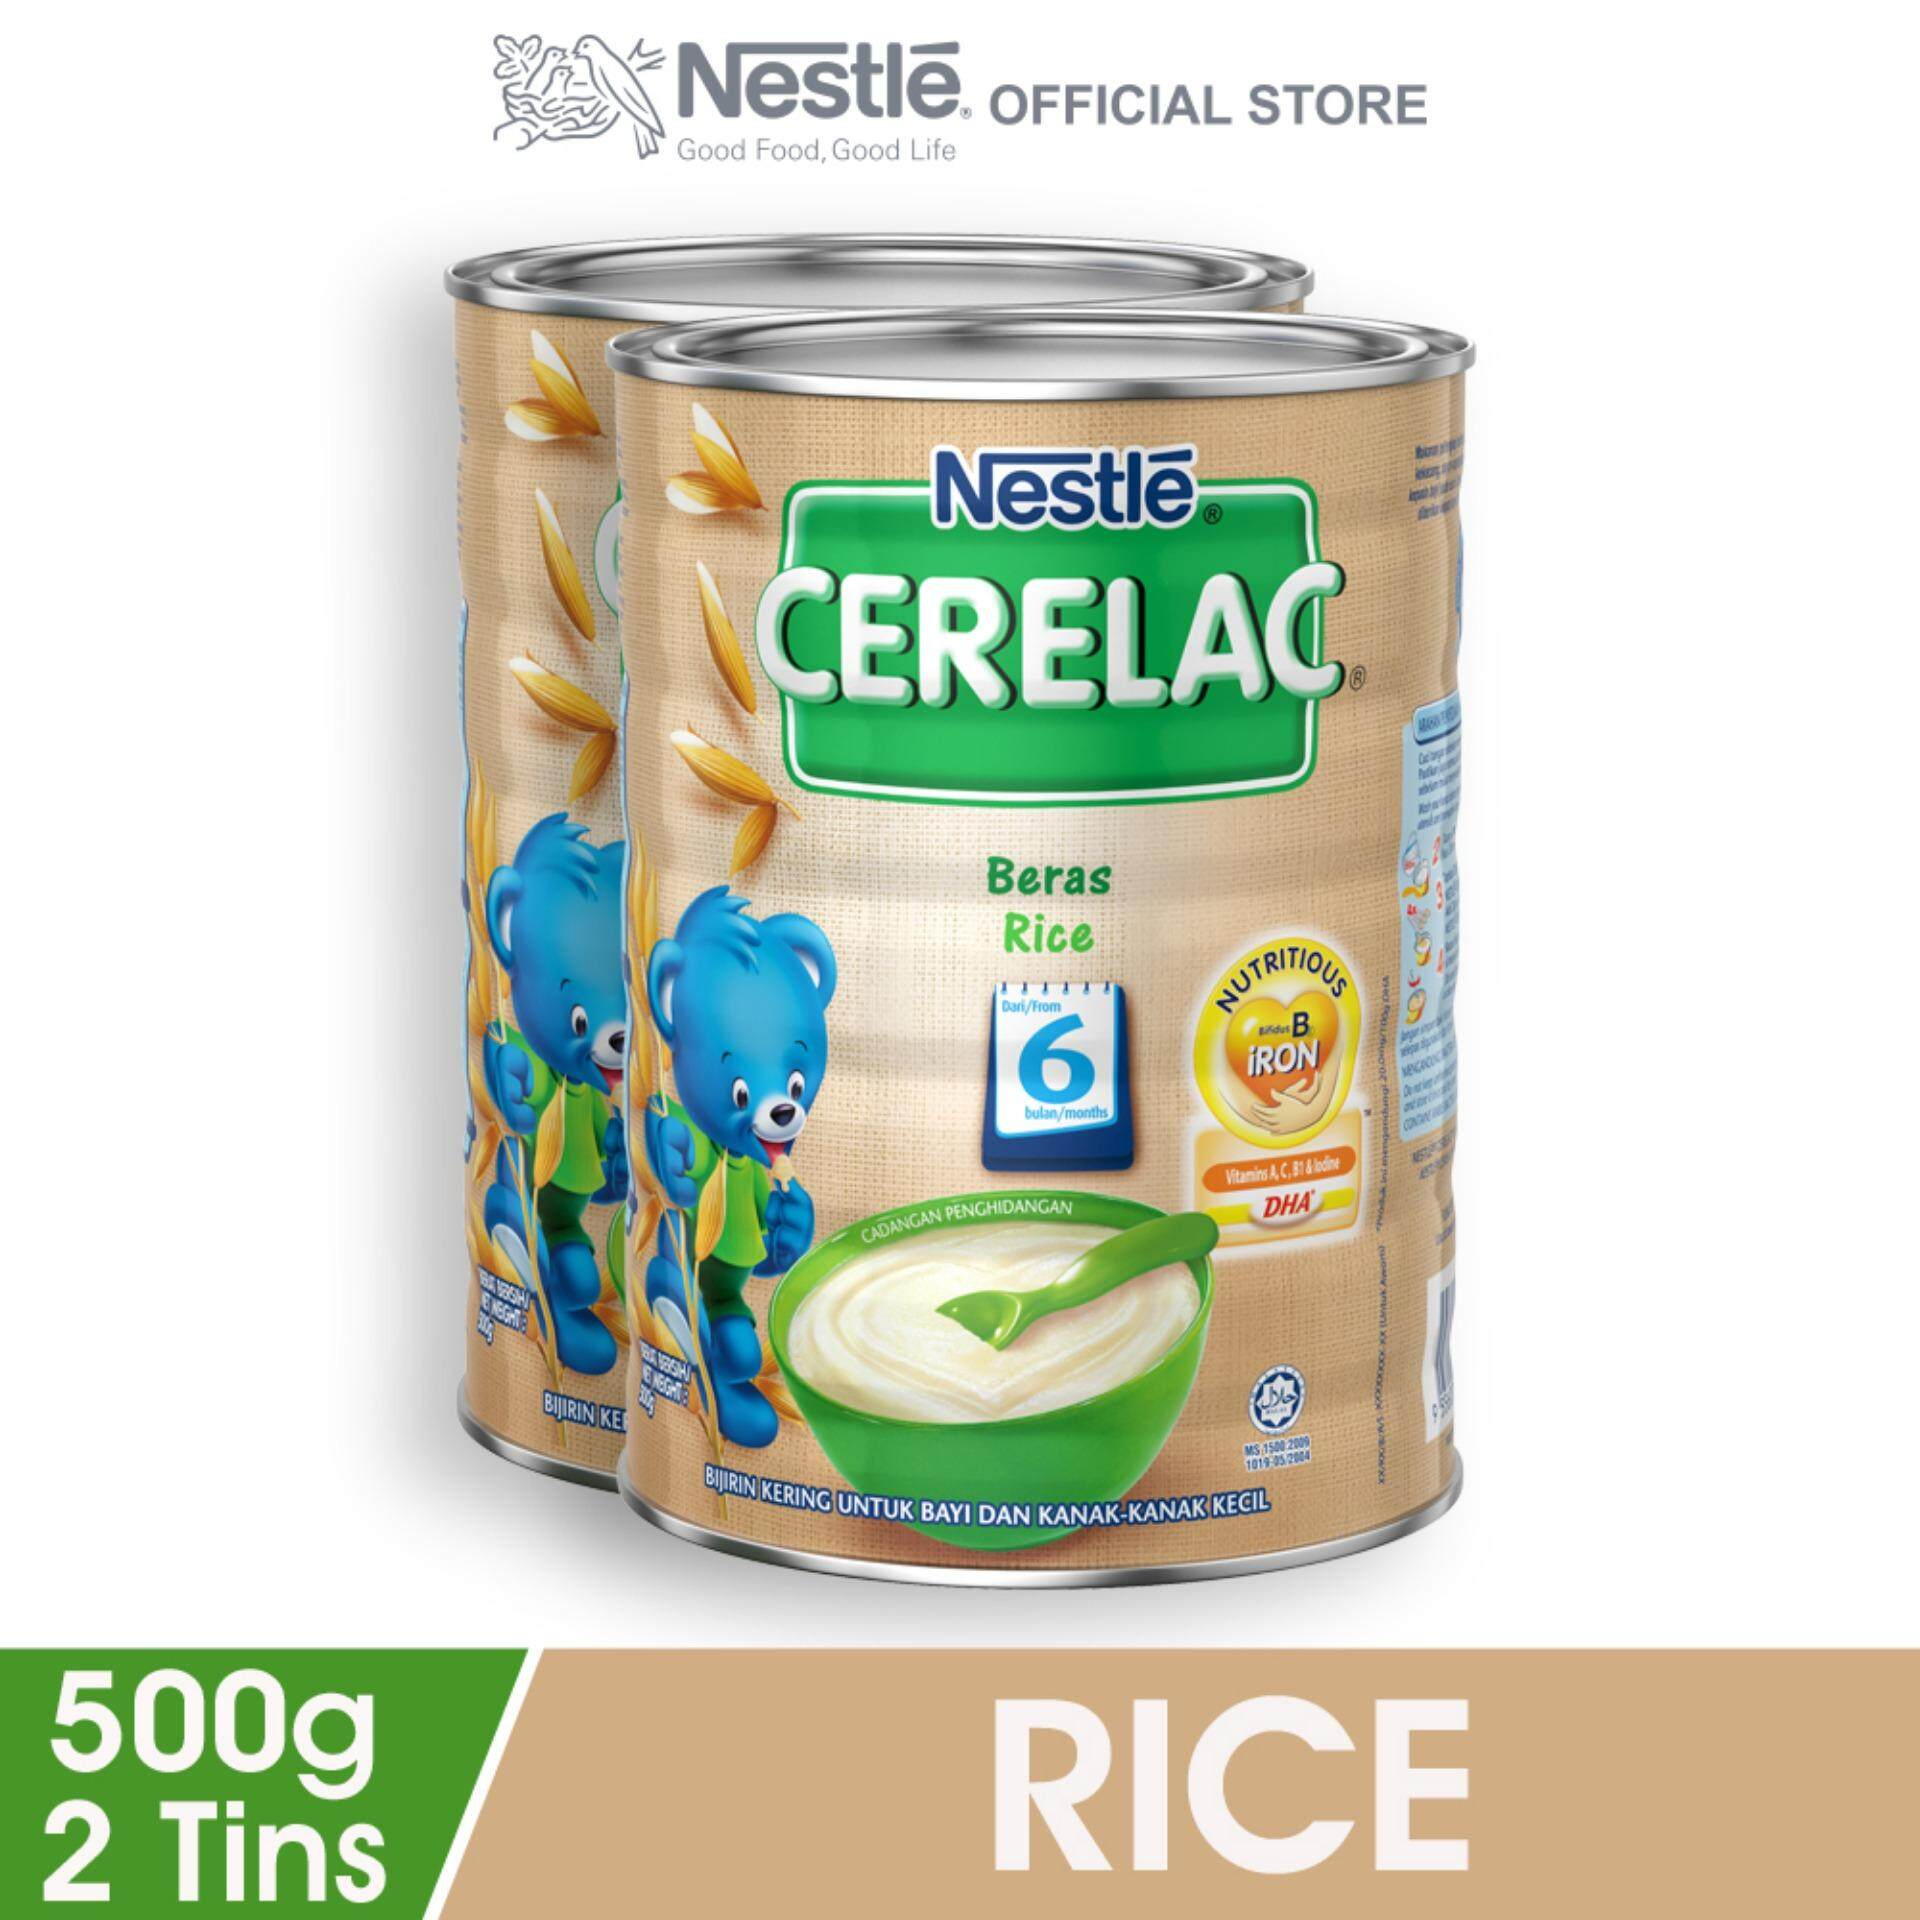 Nestle Products With Best Price At Lazada Malaysia Coffee Mate 450gram By Creamer Krimer Cerelac Rice Infant Cereal Tin 500g X2 Tins